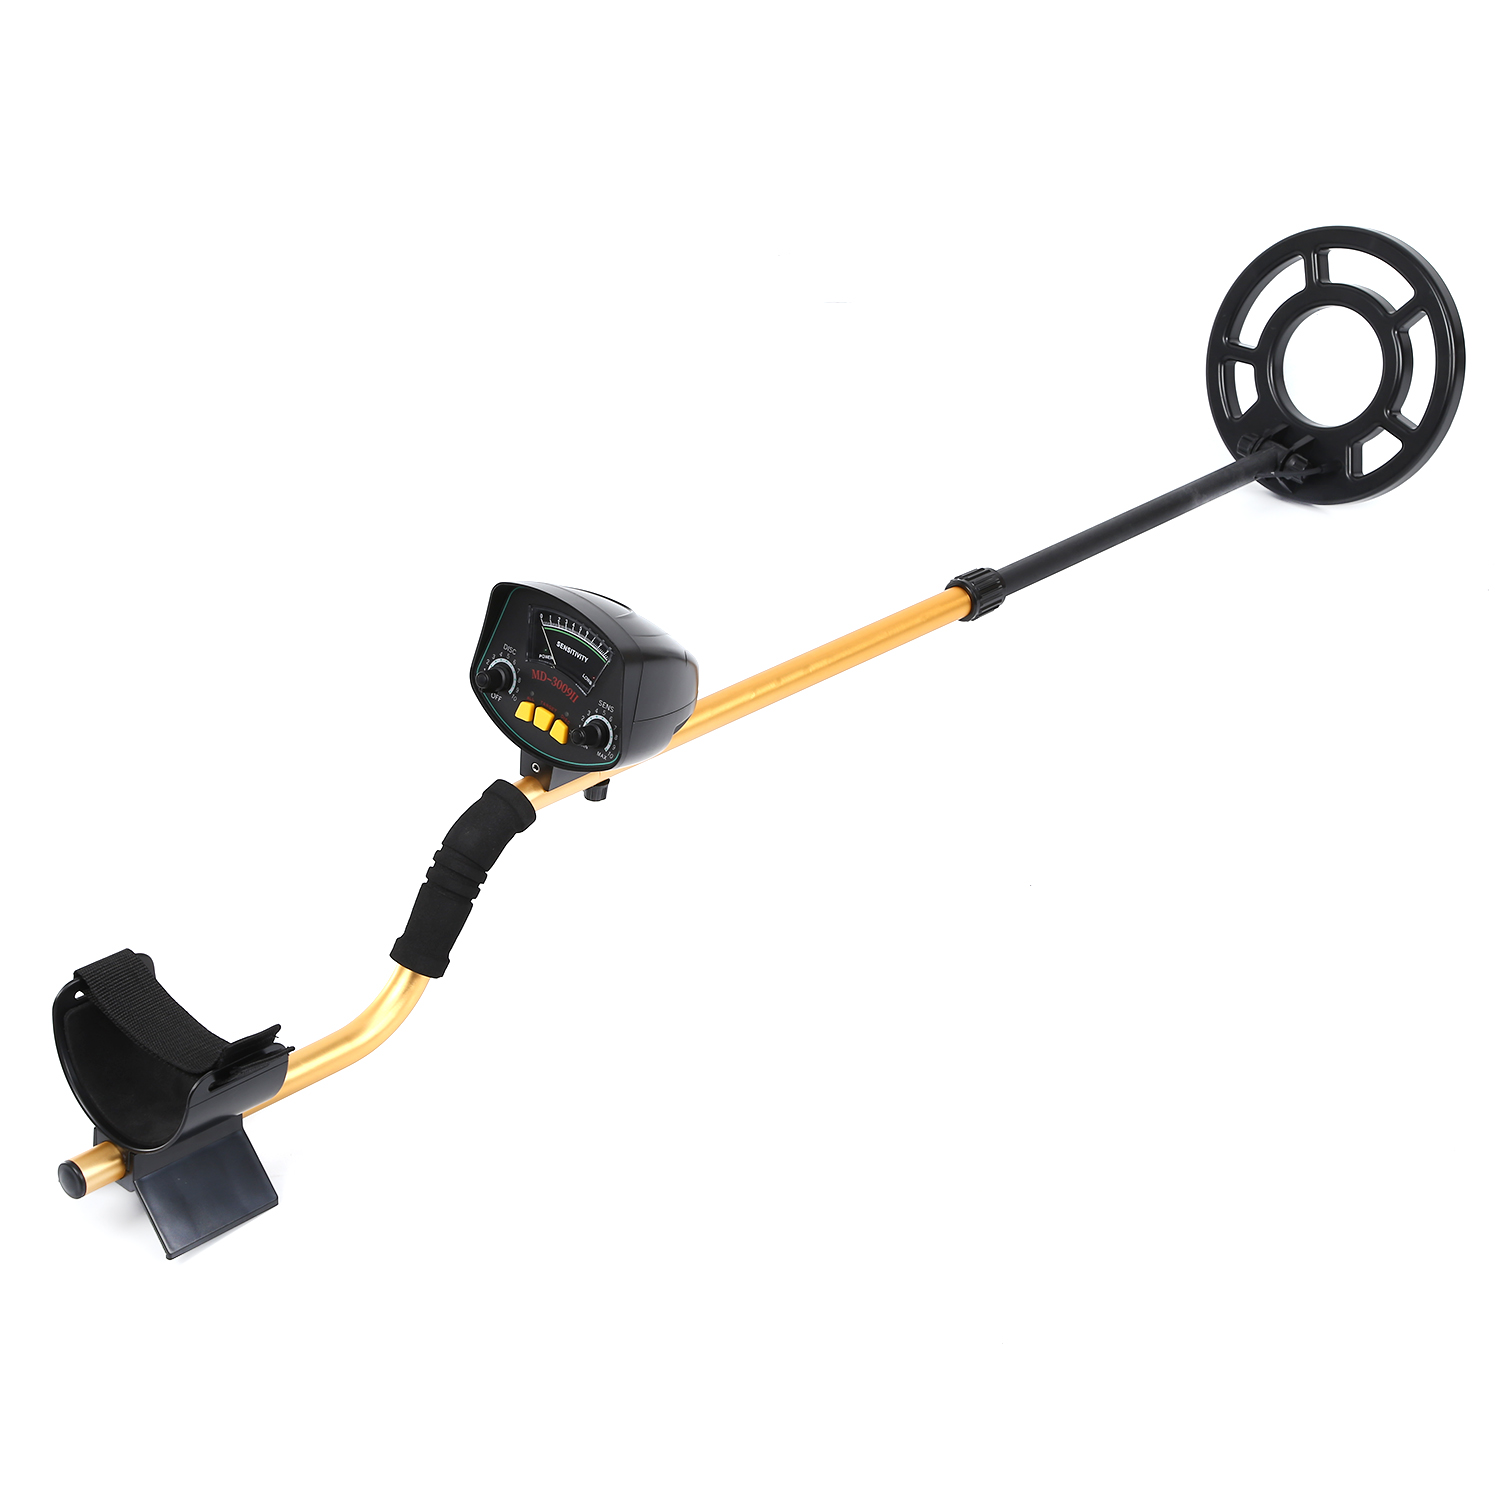 AYHF Professional Underground Metal Detector MD3009II Gold Ground Metal Detector MD 3009ii Nugget High Sensitivity Silver